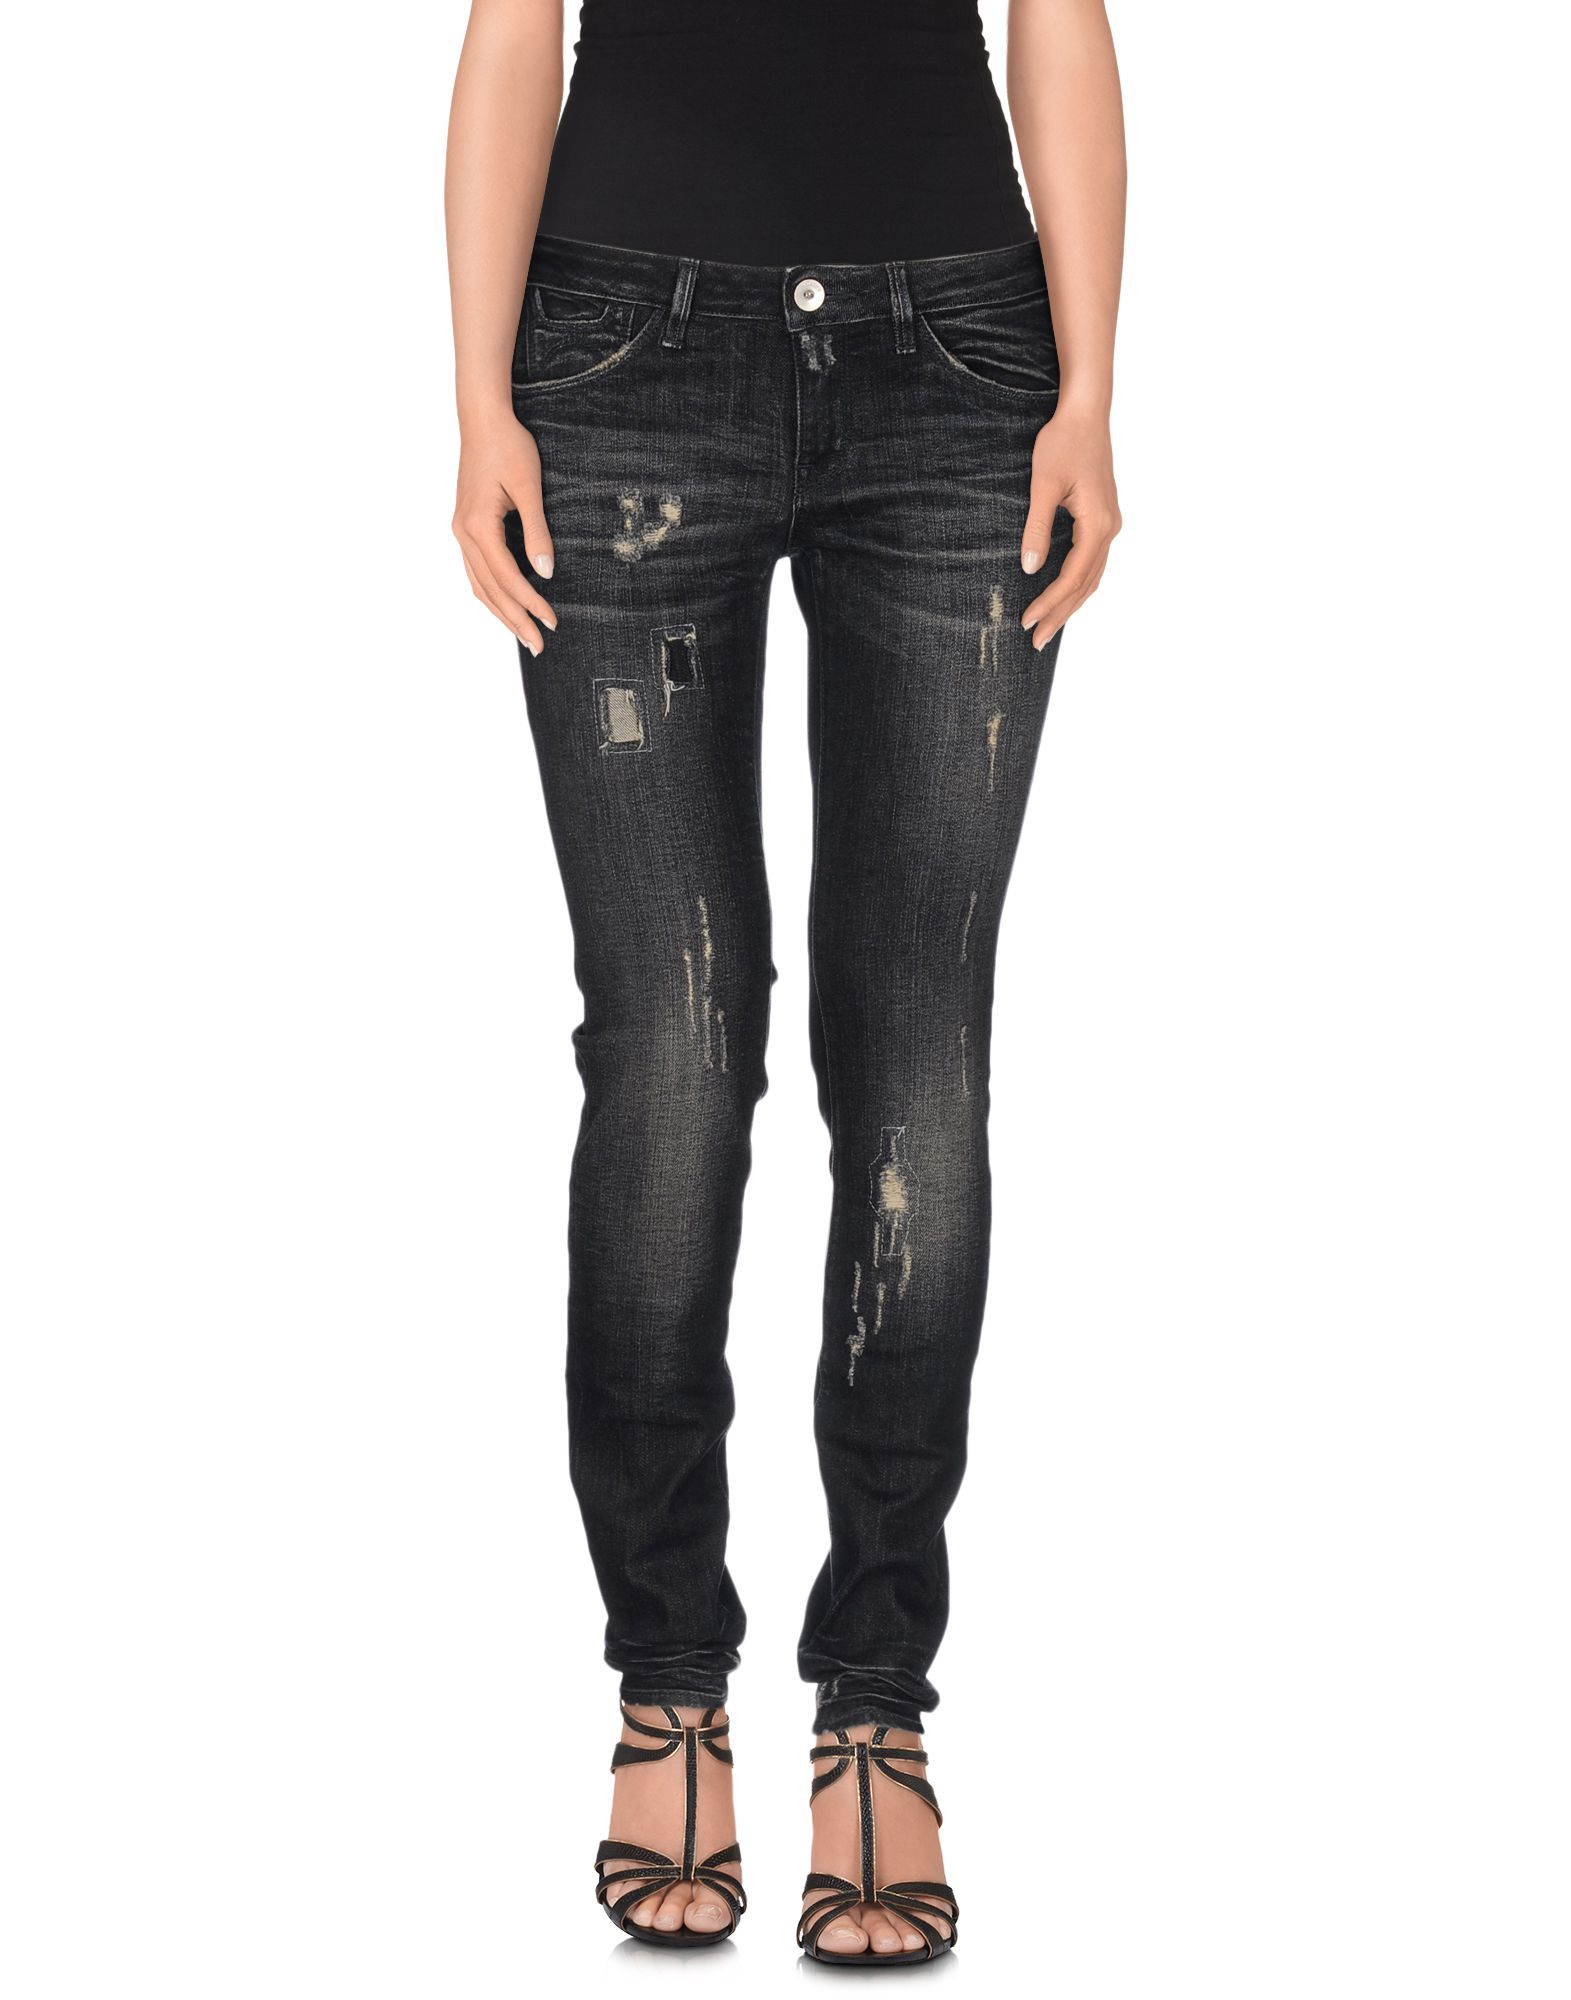 Free Shipping Excellent Cost DENIM - Denim trousers Leitmotiv Outlet Real Clearance Outlet Locations 100% Authentic gJSq7t